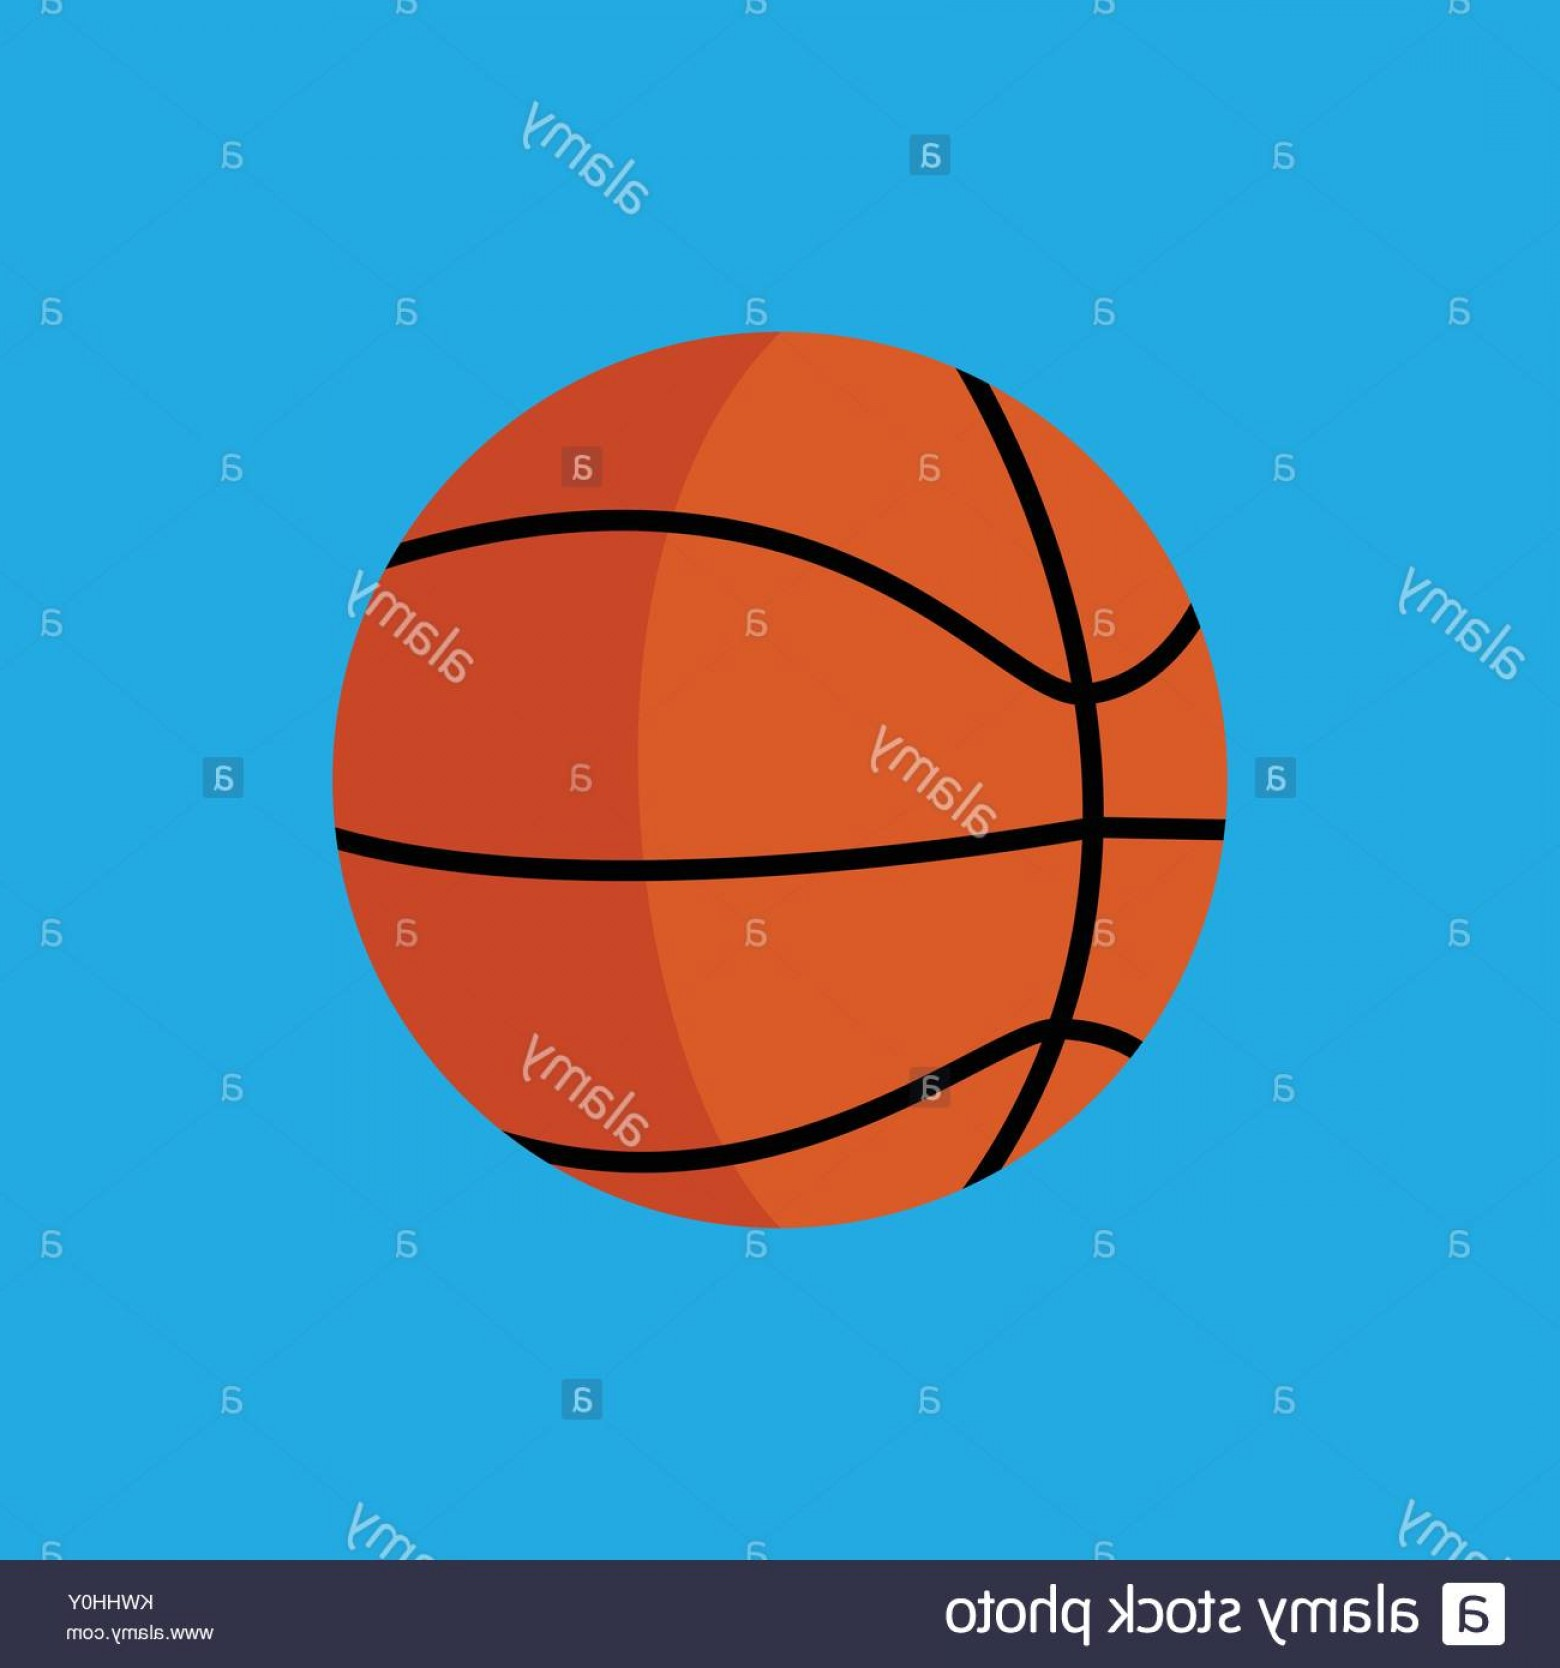 Basketball Vector Graphic Designs: Stock Photo Simple Flat Style Basketball Sport Vector Illustration Graphic Design